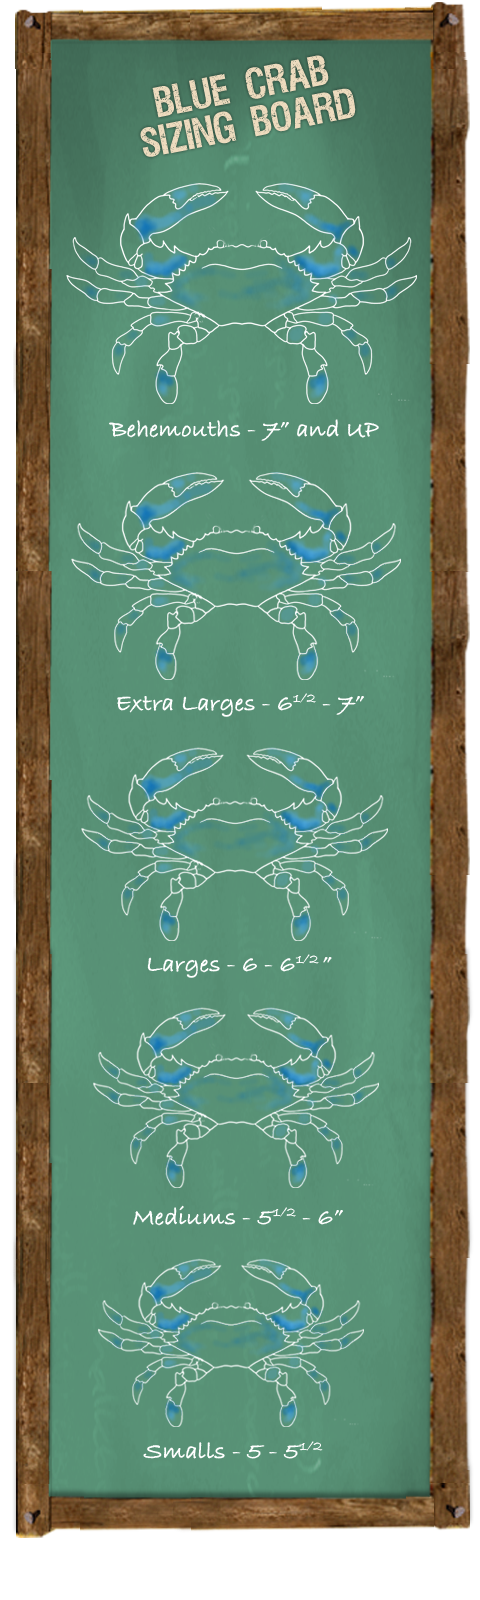 Blue Crab Sizing Board